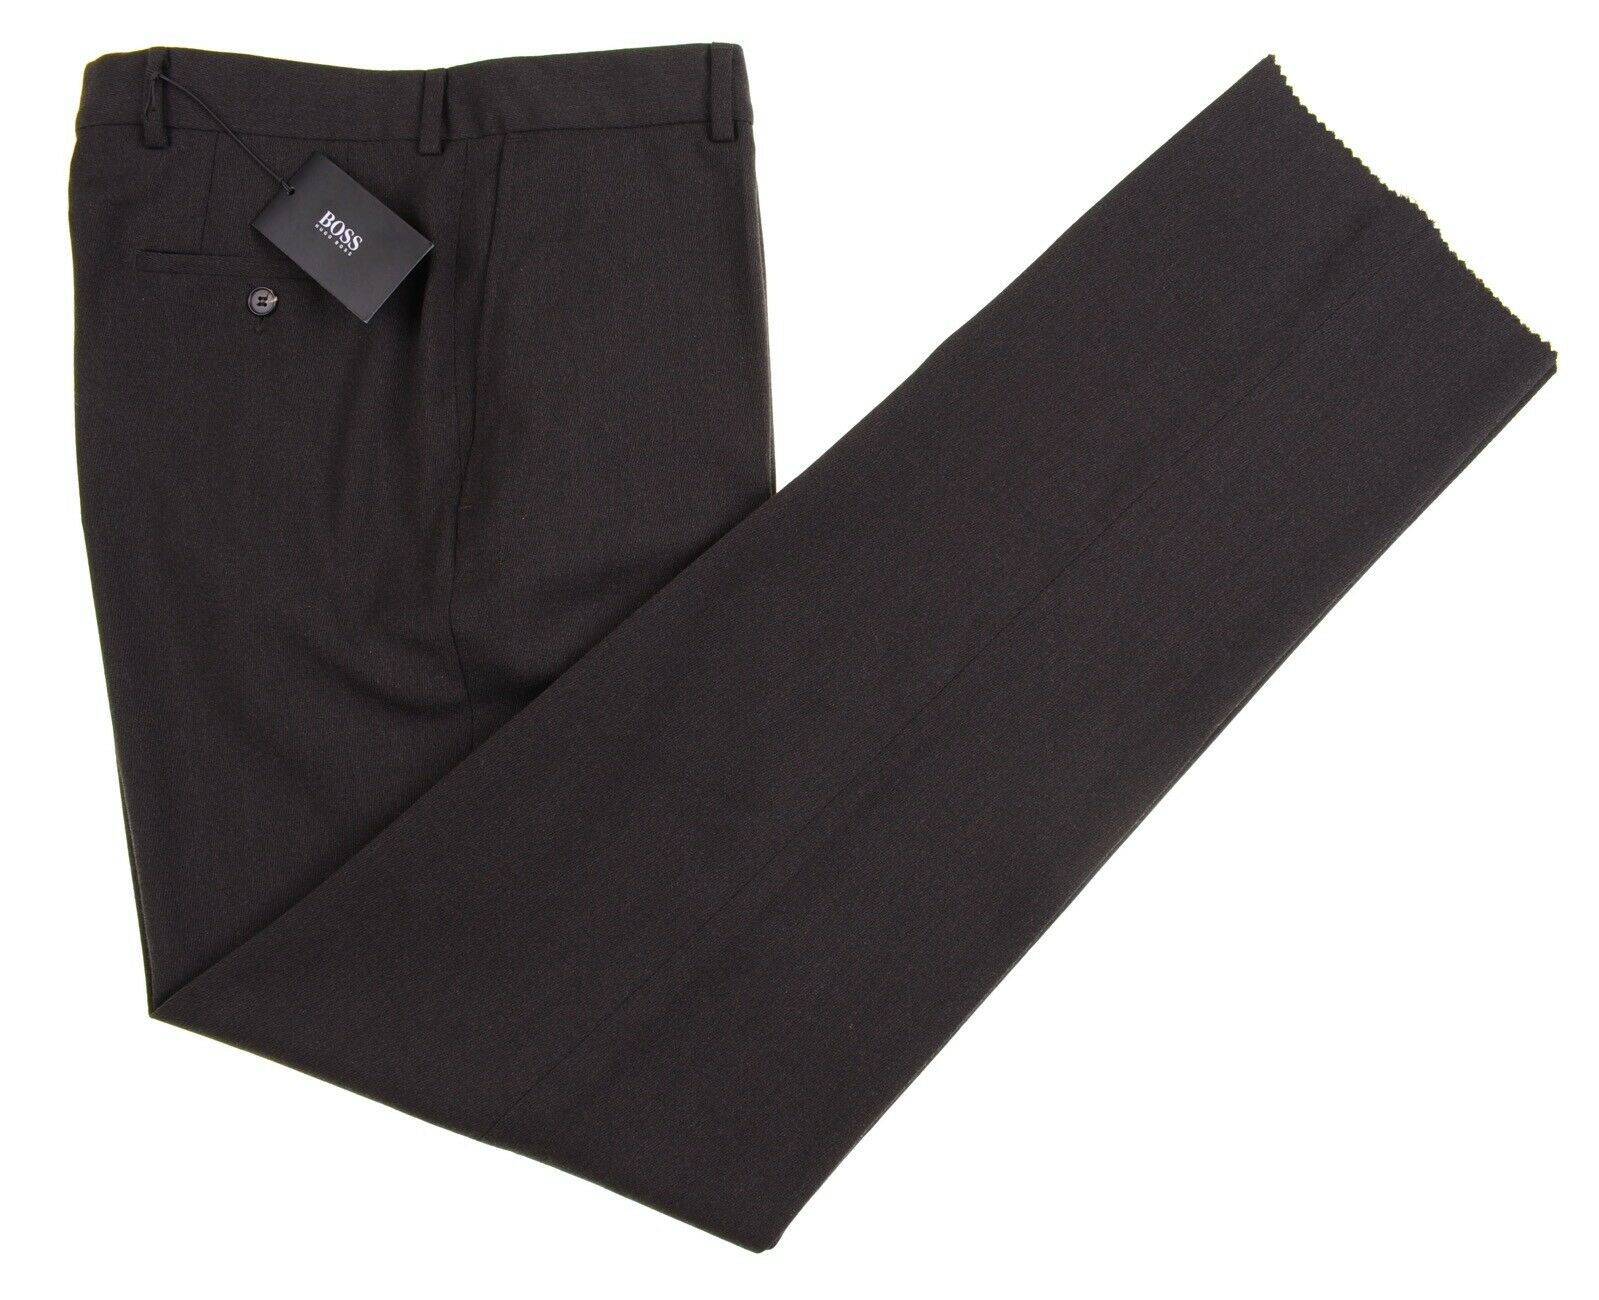 NWT Hugo Boss 'James Brown' Brown Brushed Twill Flat Front Dress Pants 34 NEW